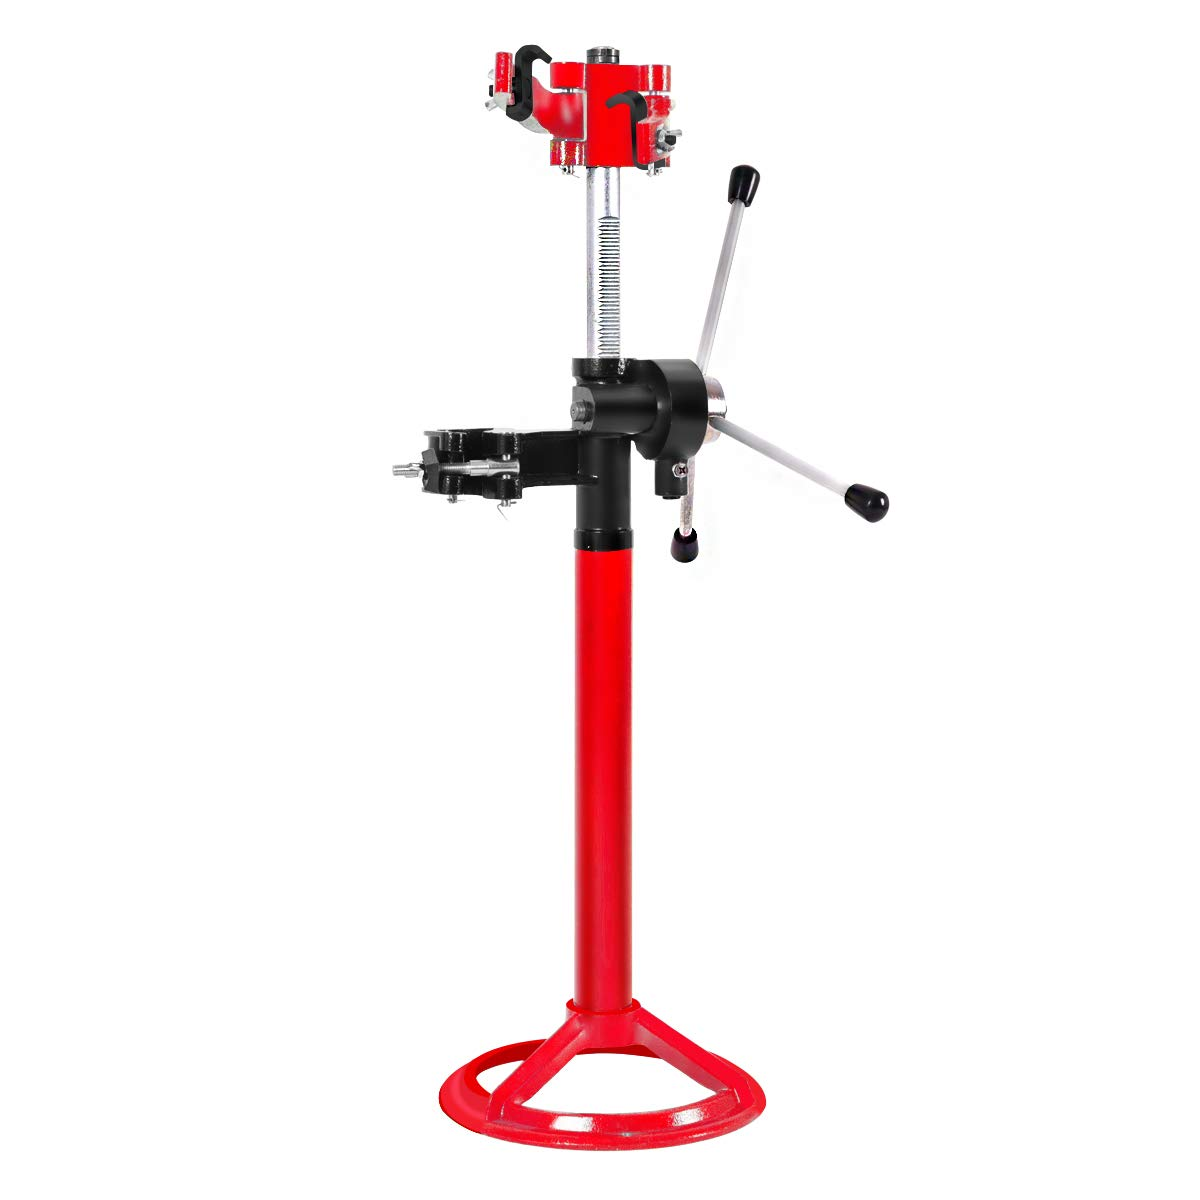 Goplus 20'' Strut Coil Spring Press Compressor Hand Operate Auto Equipment Compress, Red by Goplus (Image #1)